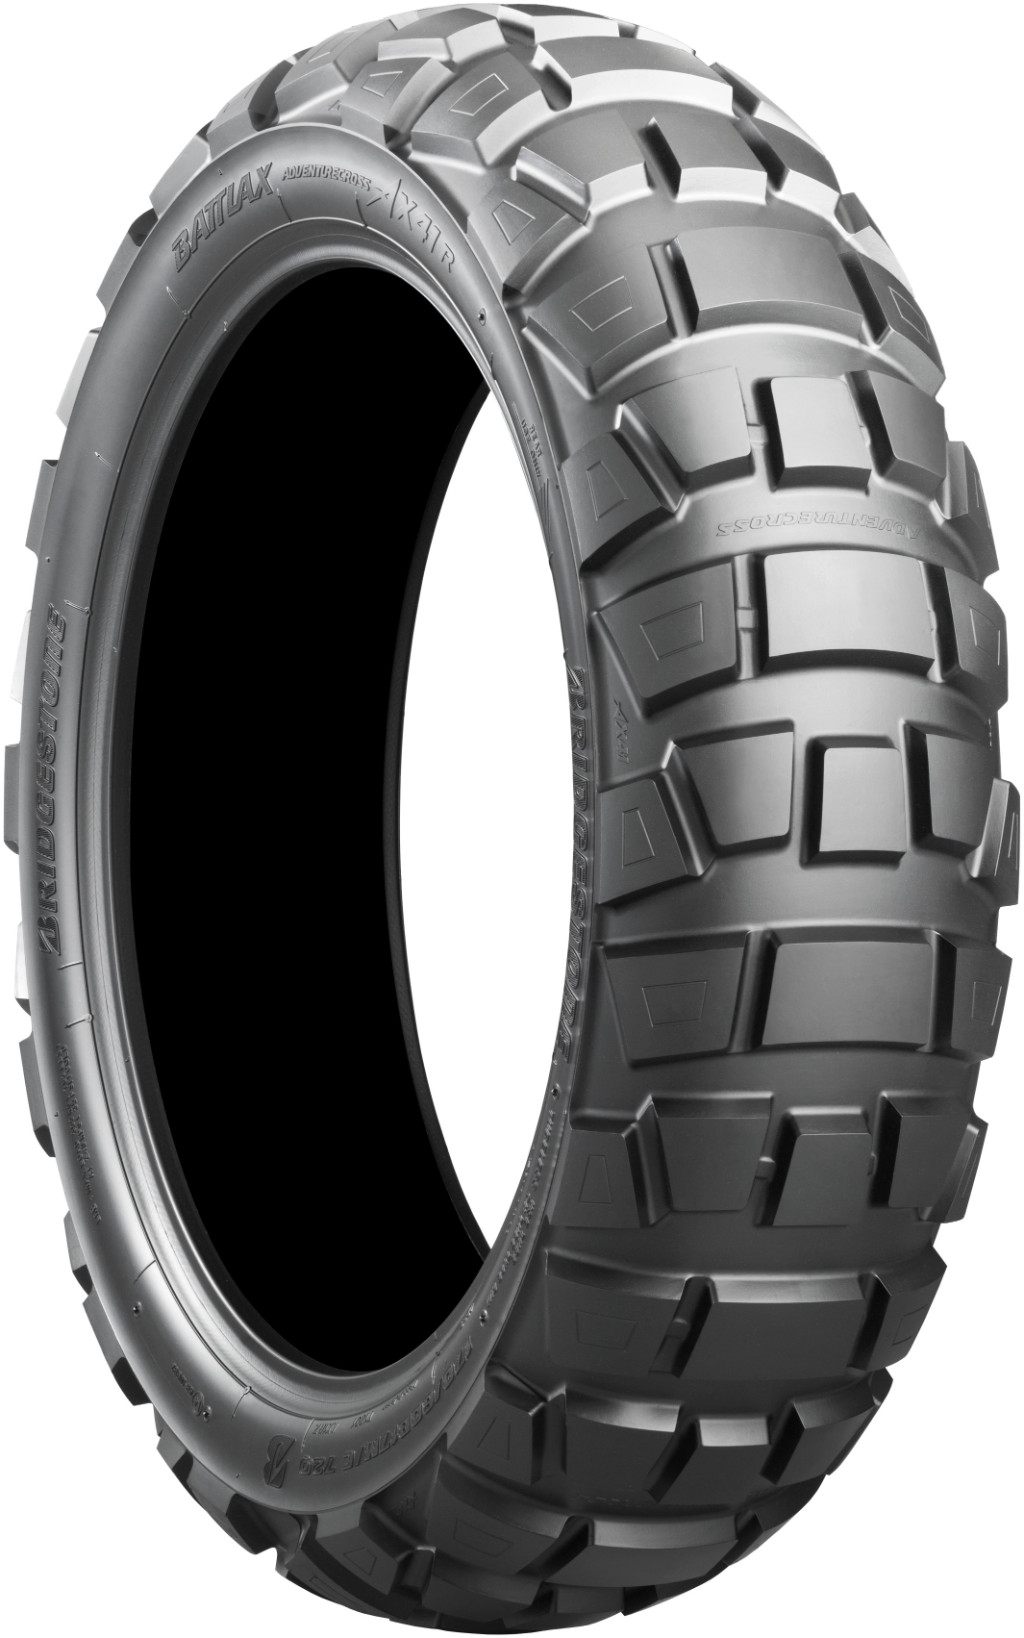 BRIDGESTONE BATTLAX ADVENTURECROSS AX41 [170/60B 17M/C 72Q] Tire